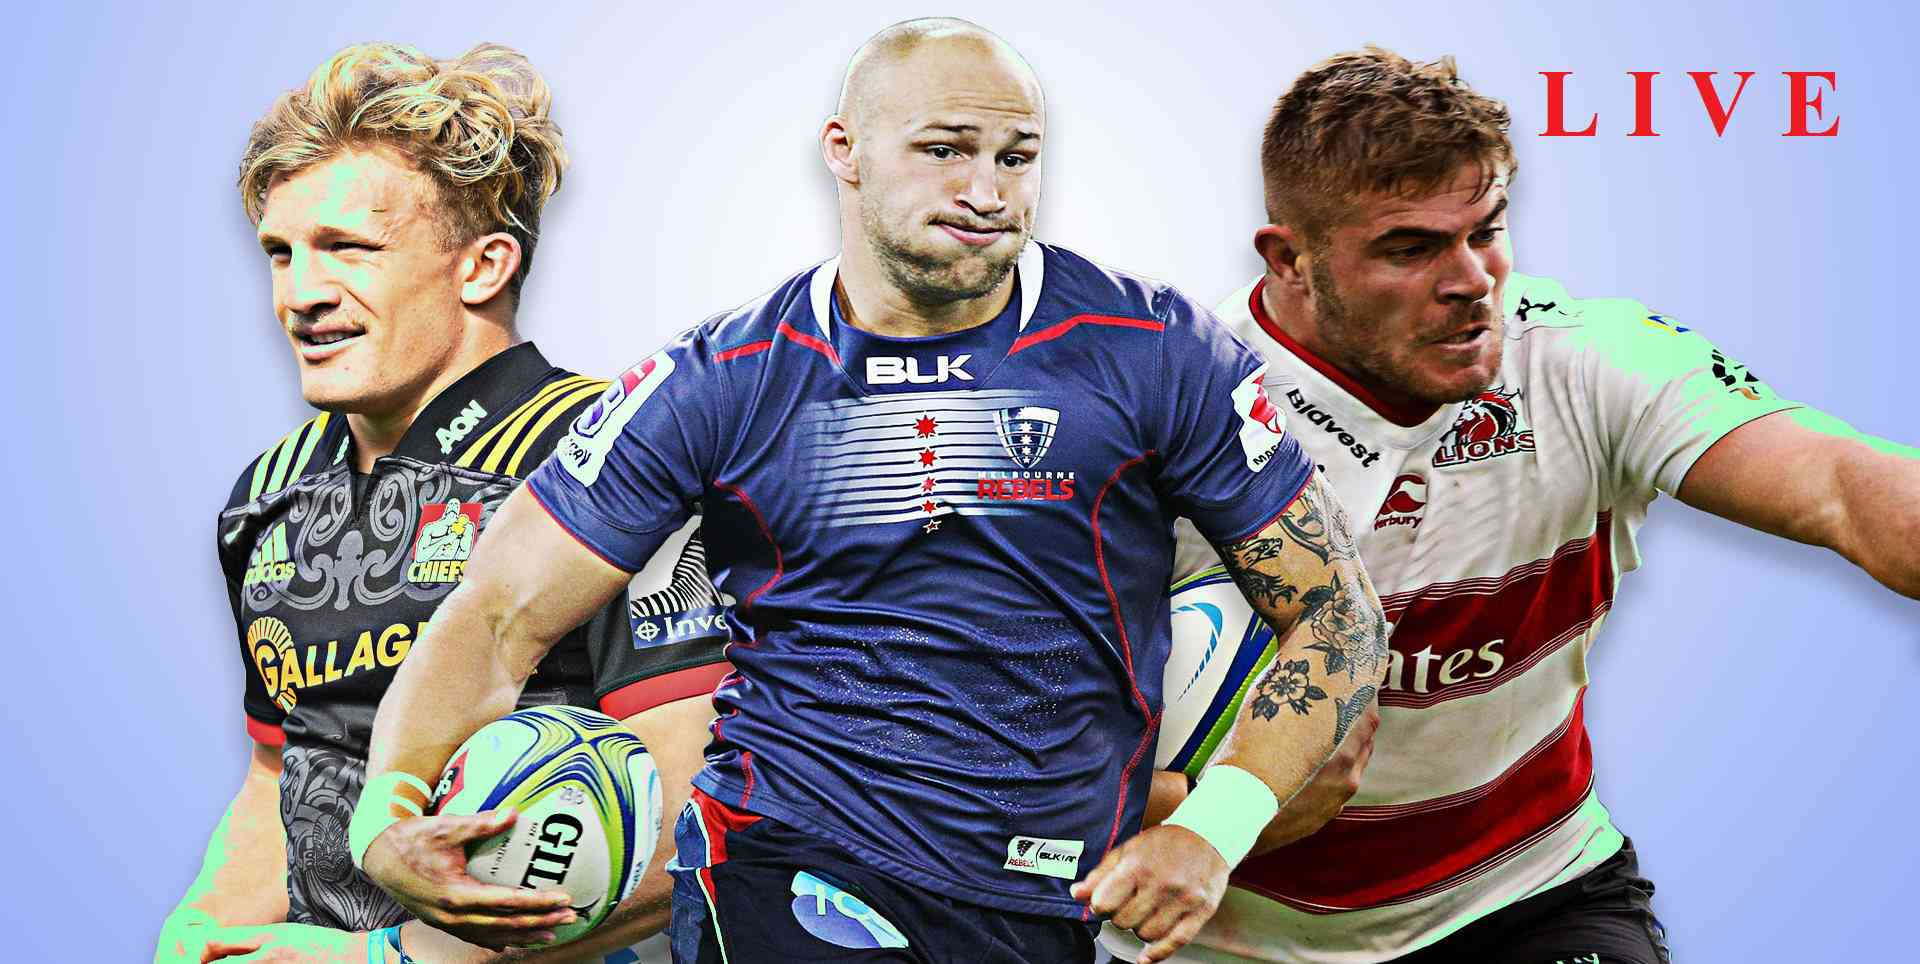 usa-vs-papua-new-guinea-rlwc-live